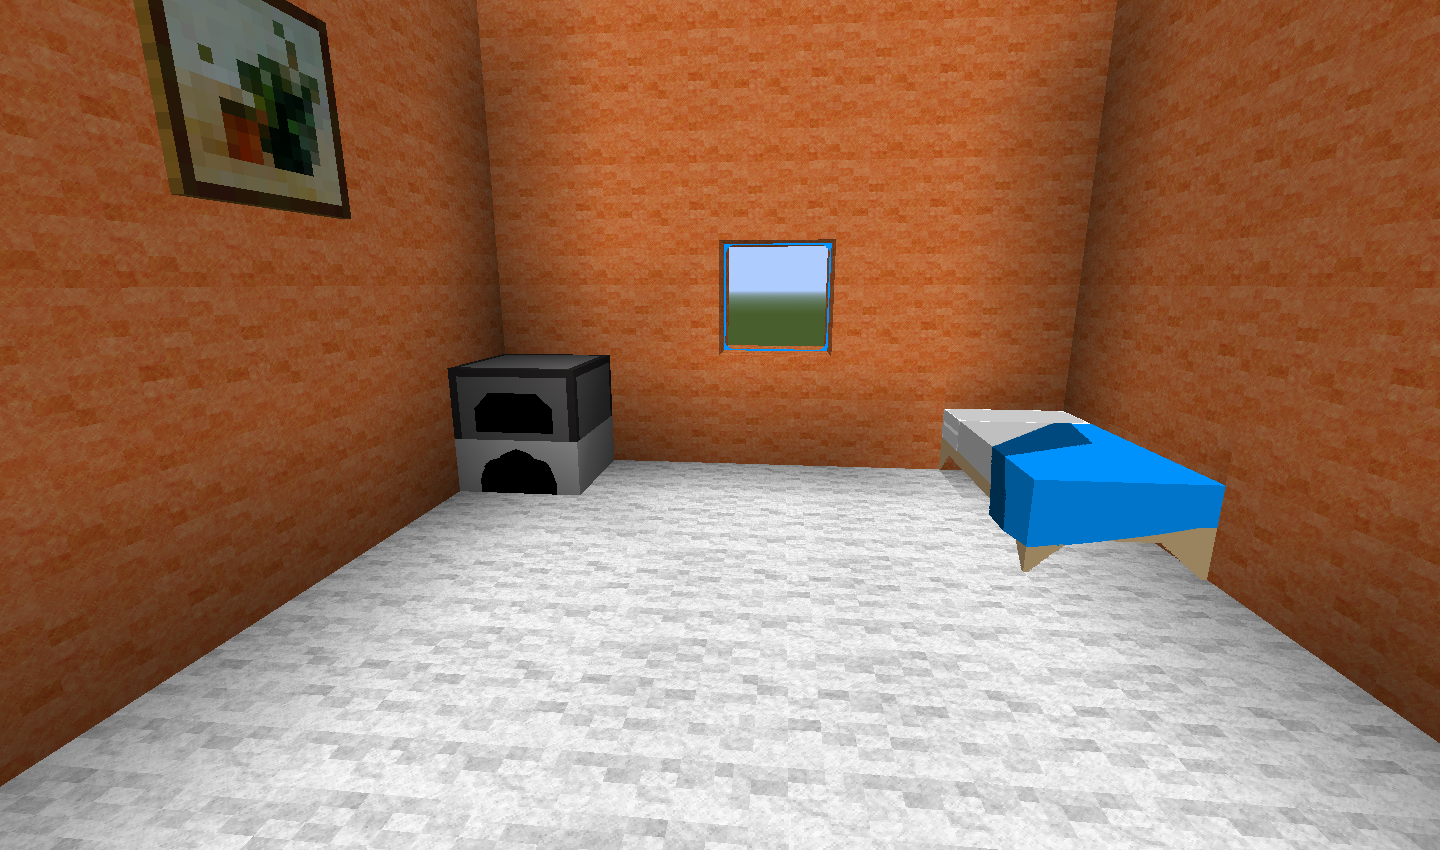 The Room in Minecraft